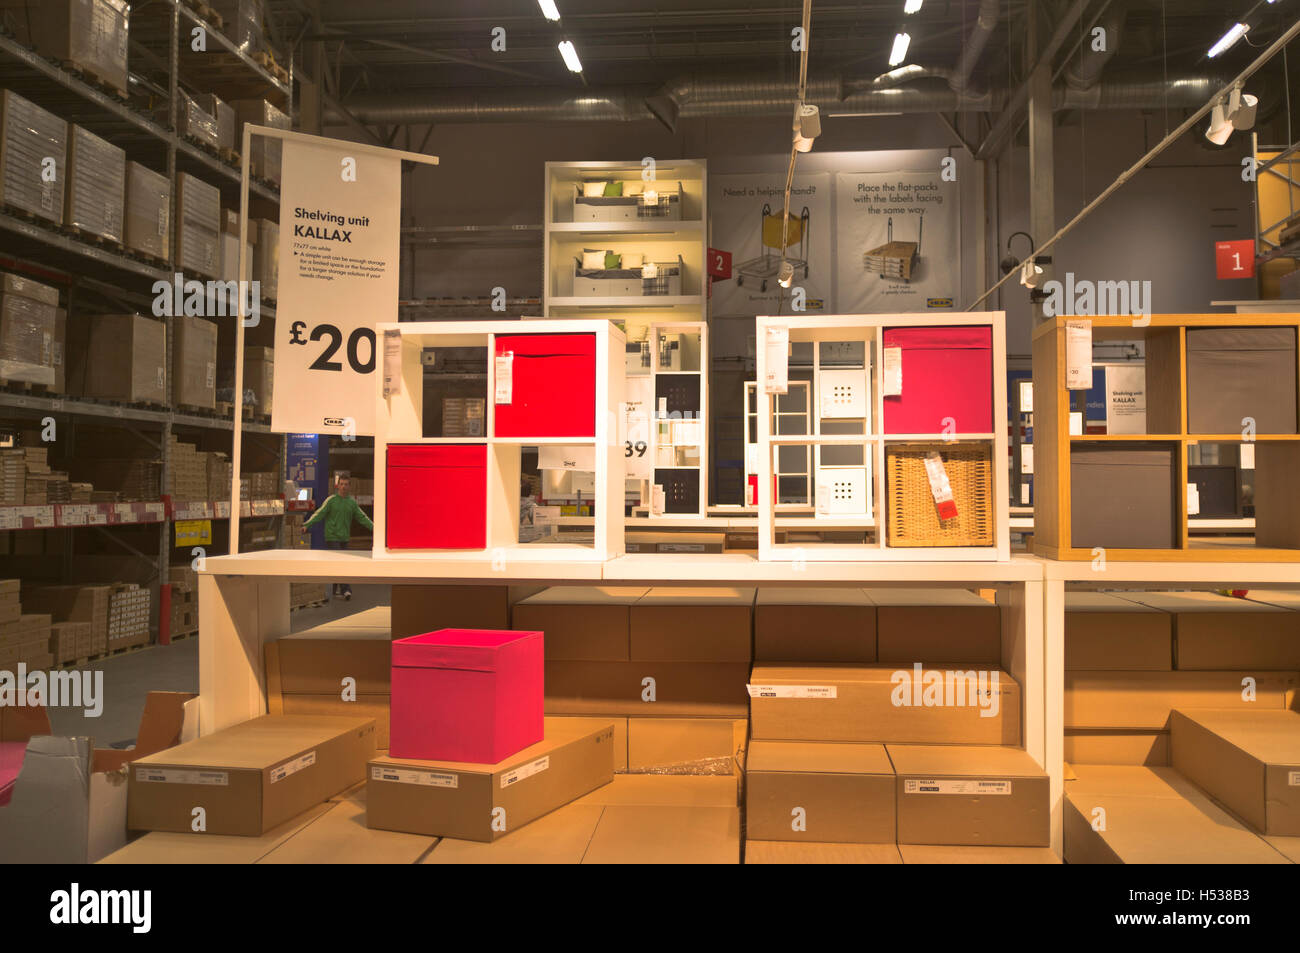 dh ikea superstore uk inside store display interior store england stock photo royalty free. Black Bedroom Furniture Sets. Home Design Ideas